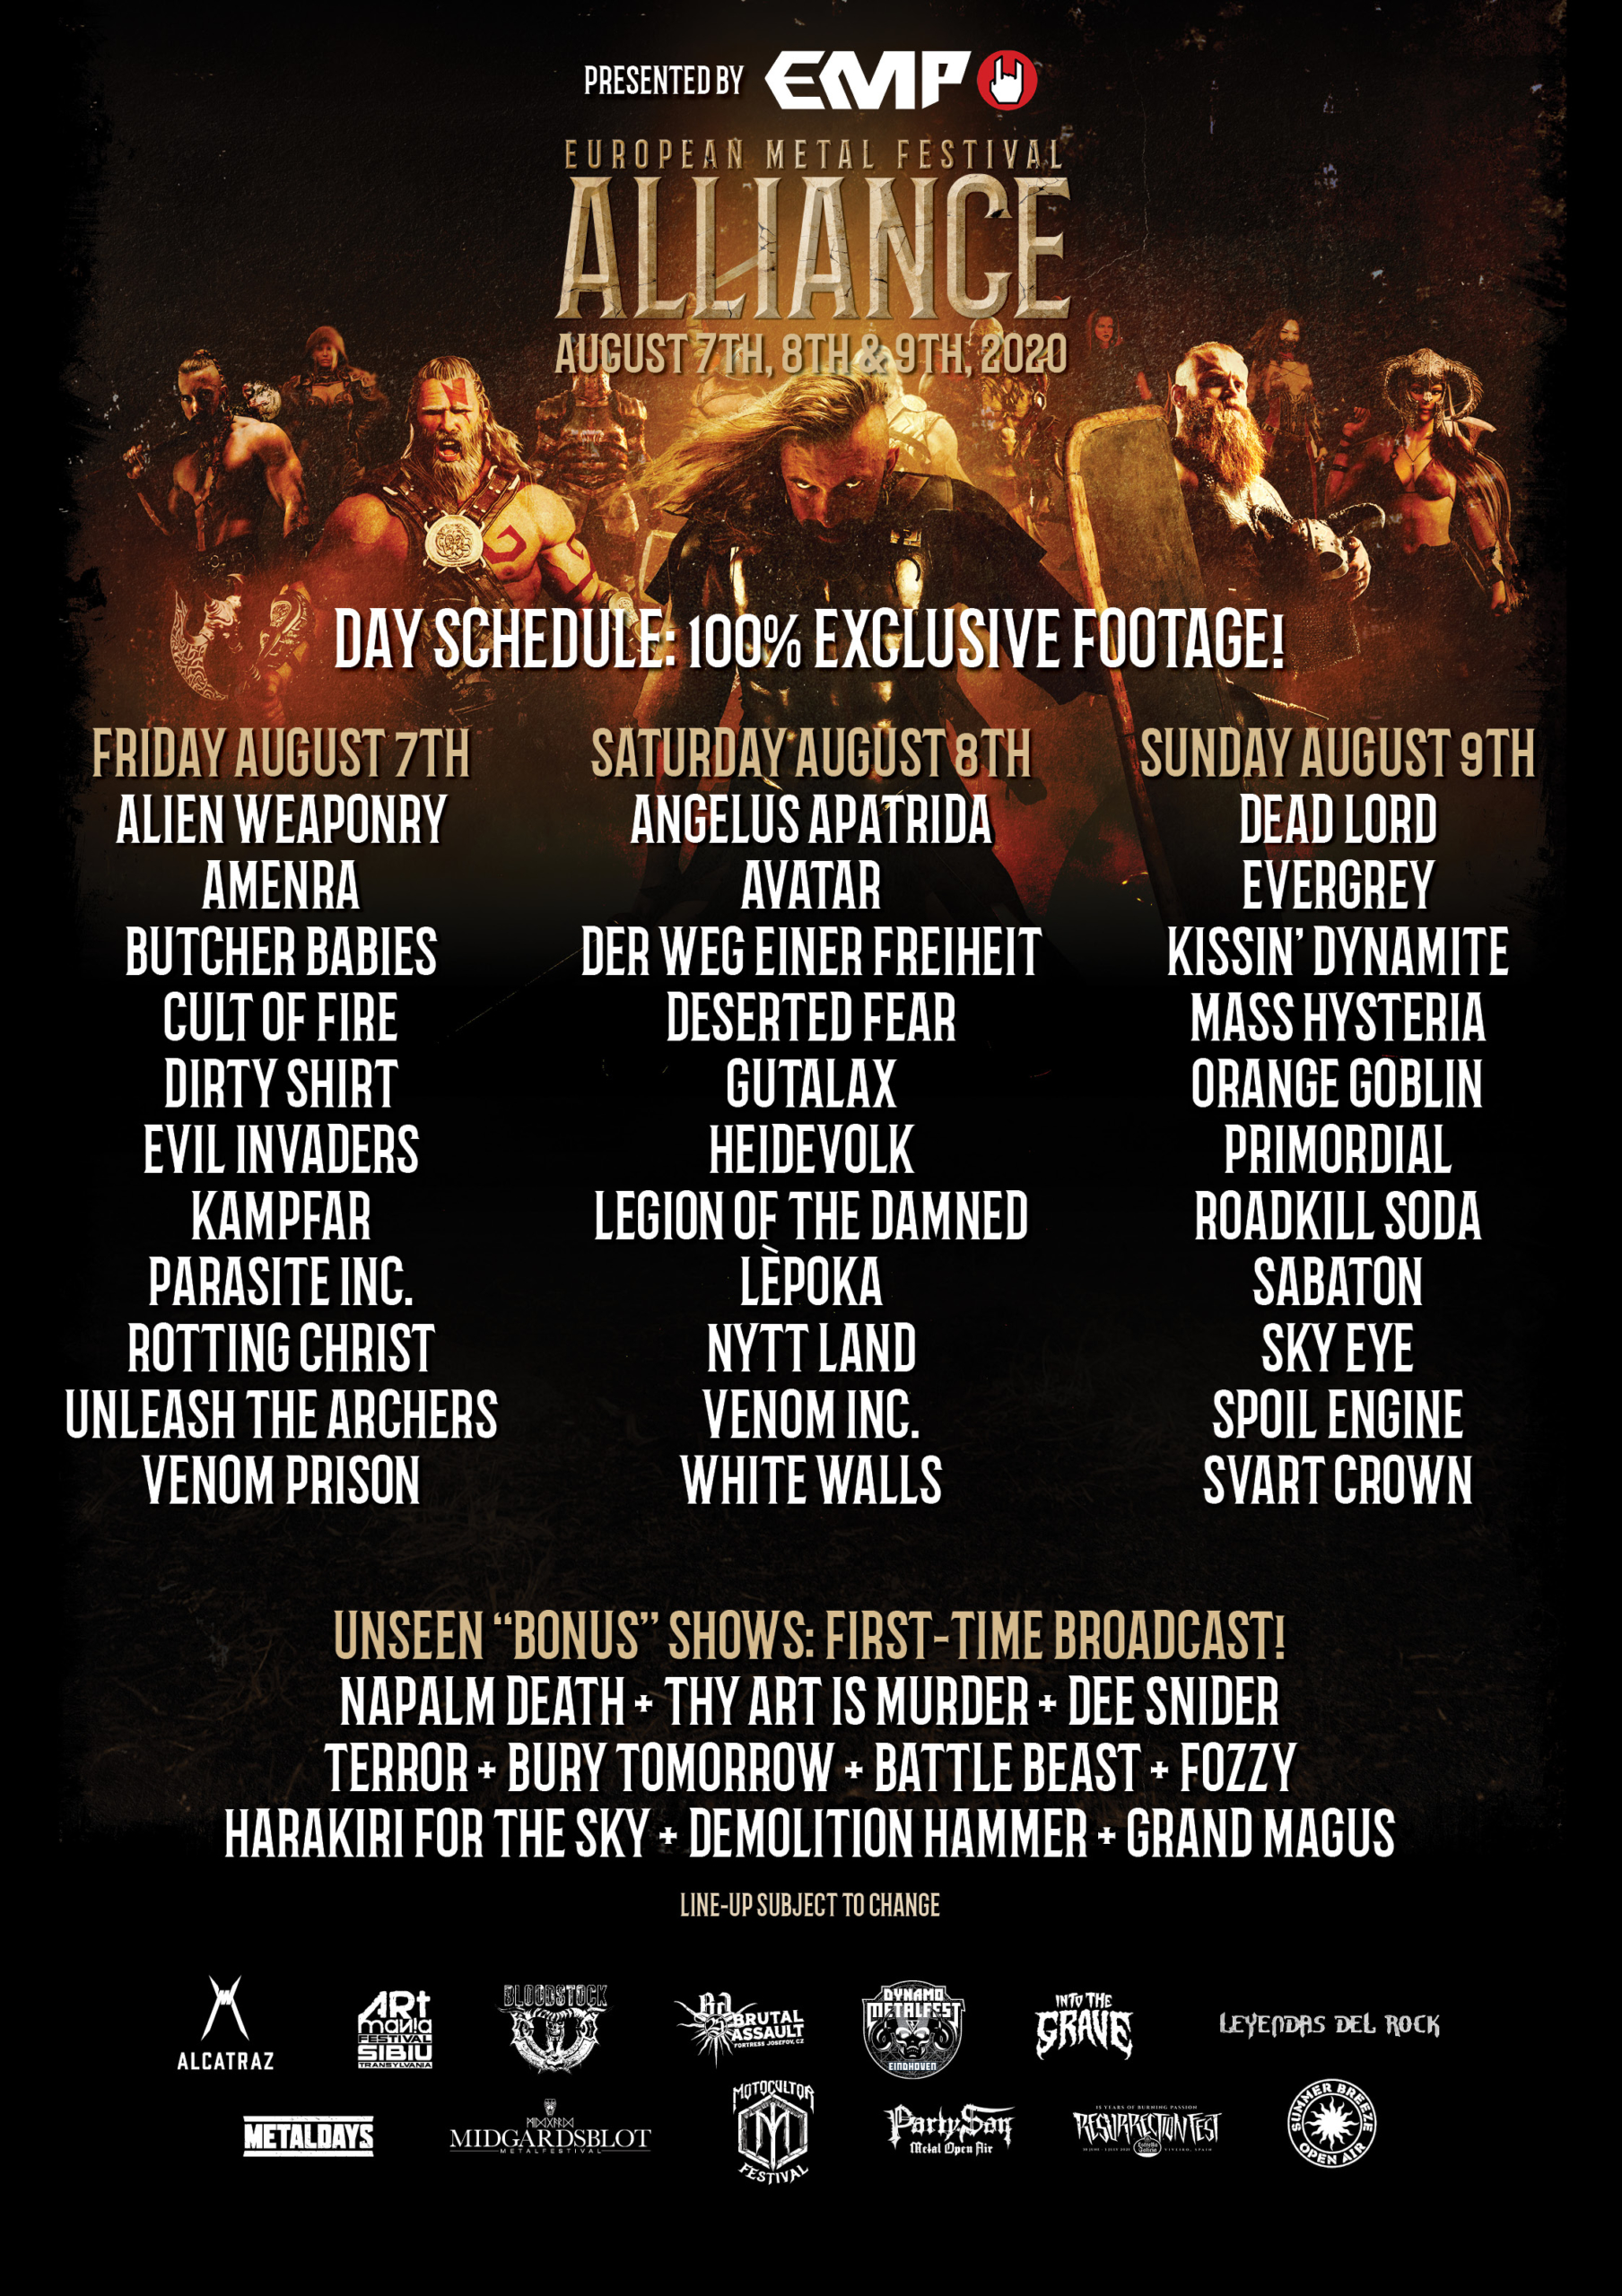 European Metal Festival Alliance 2020